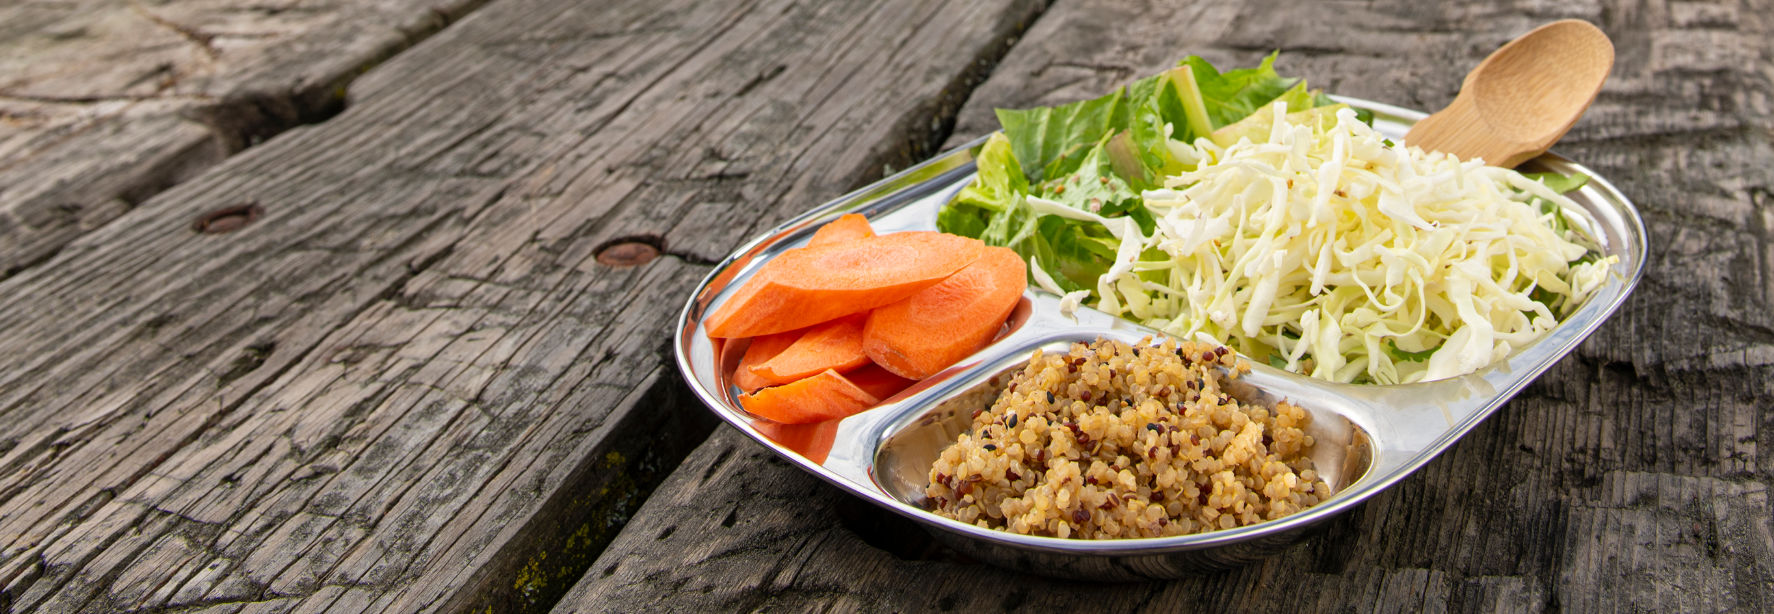 ECOlunchbox tray with cabbage, lettuce, carrots, quinoa, and wood spork on rustic park bench.